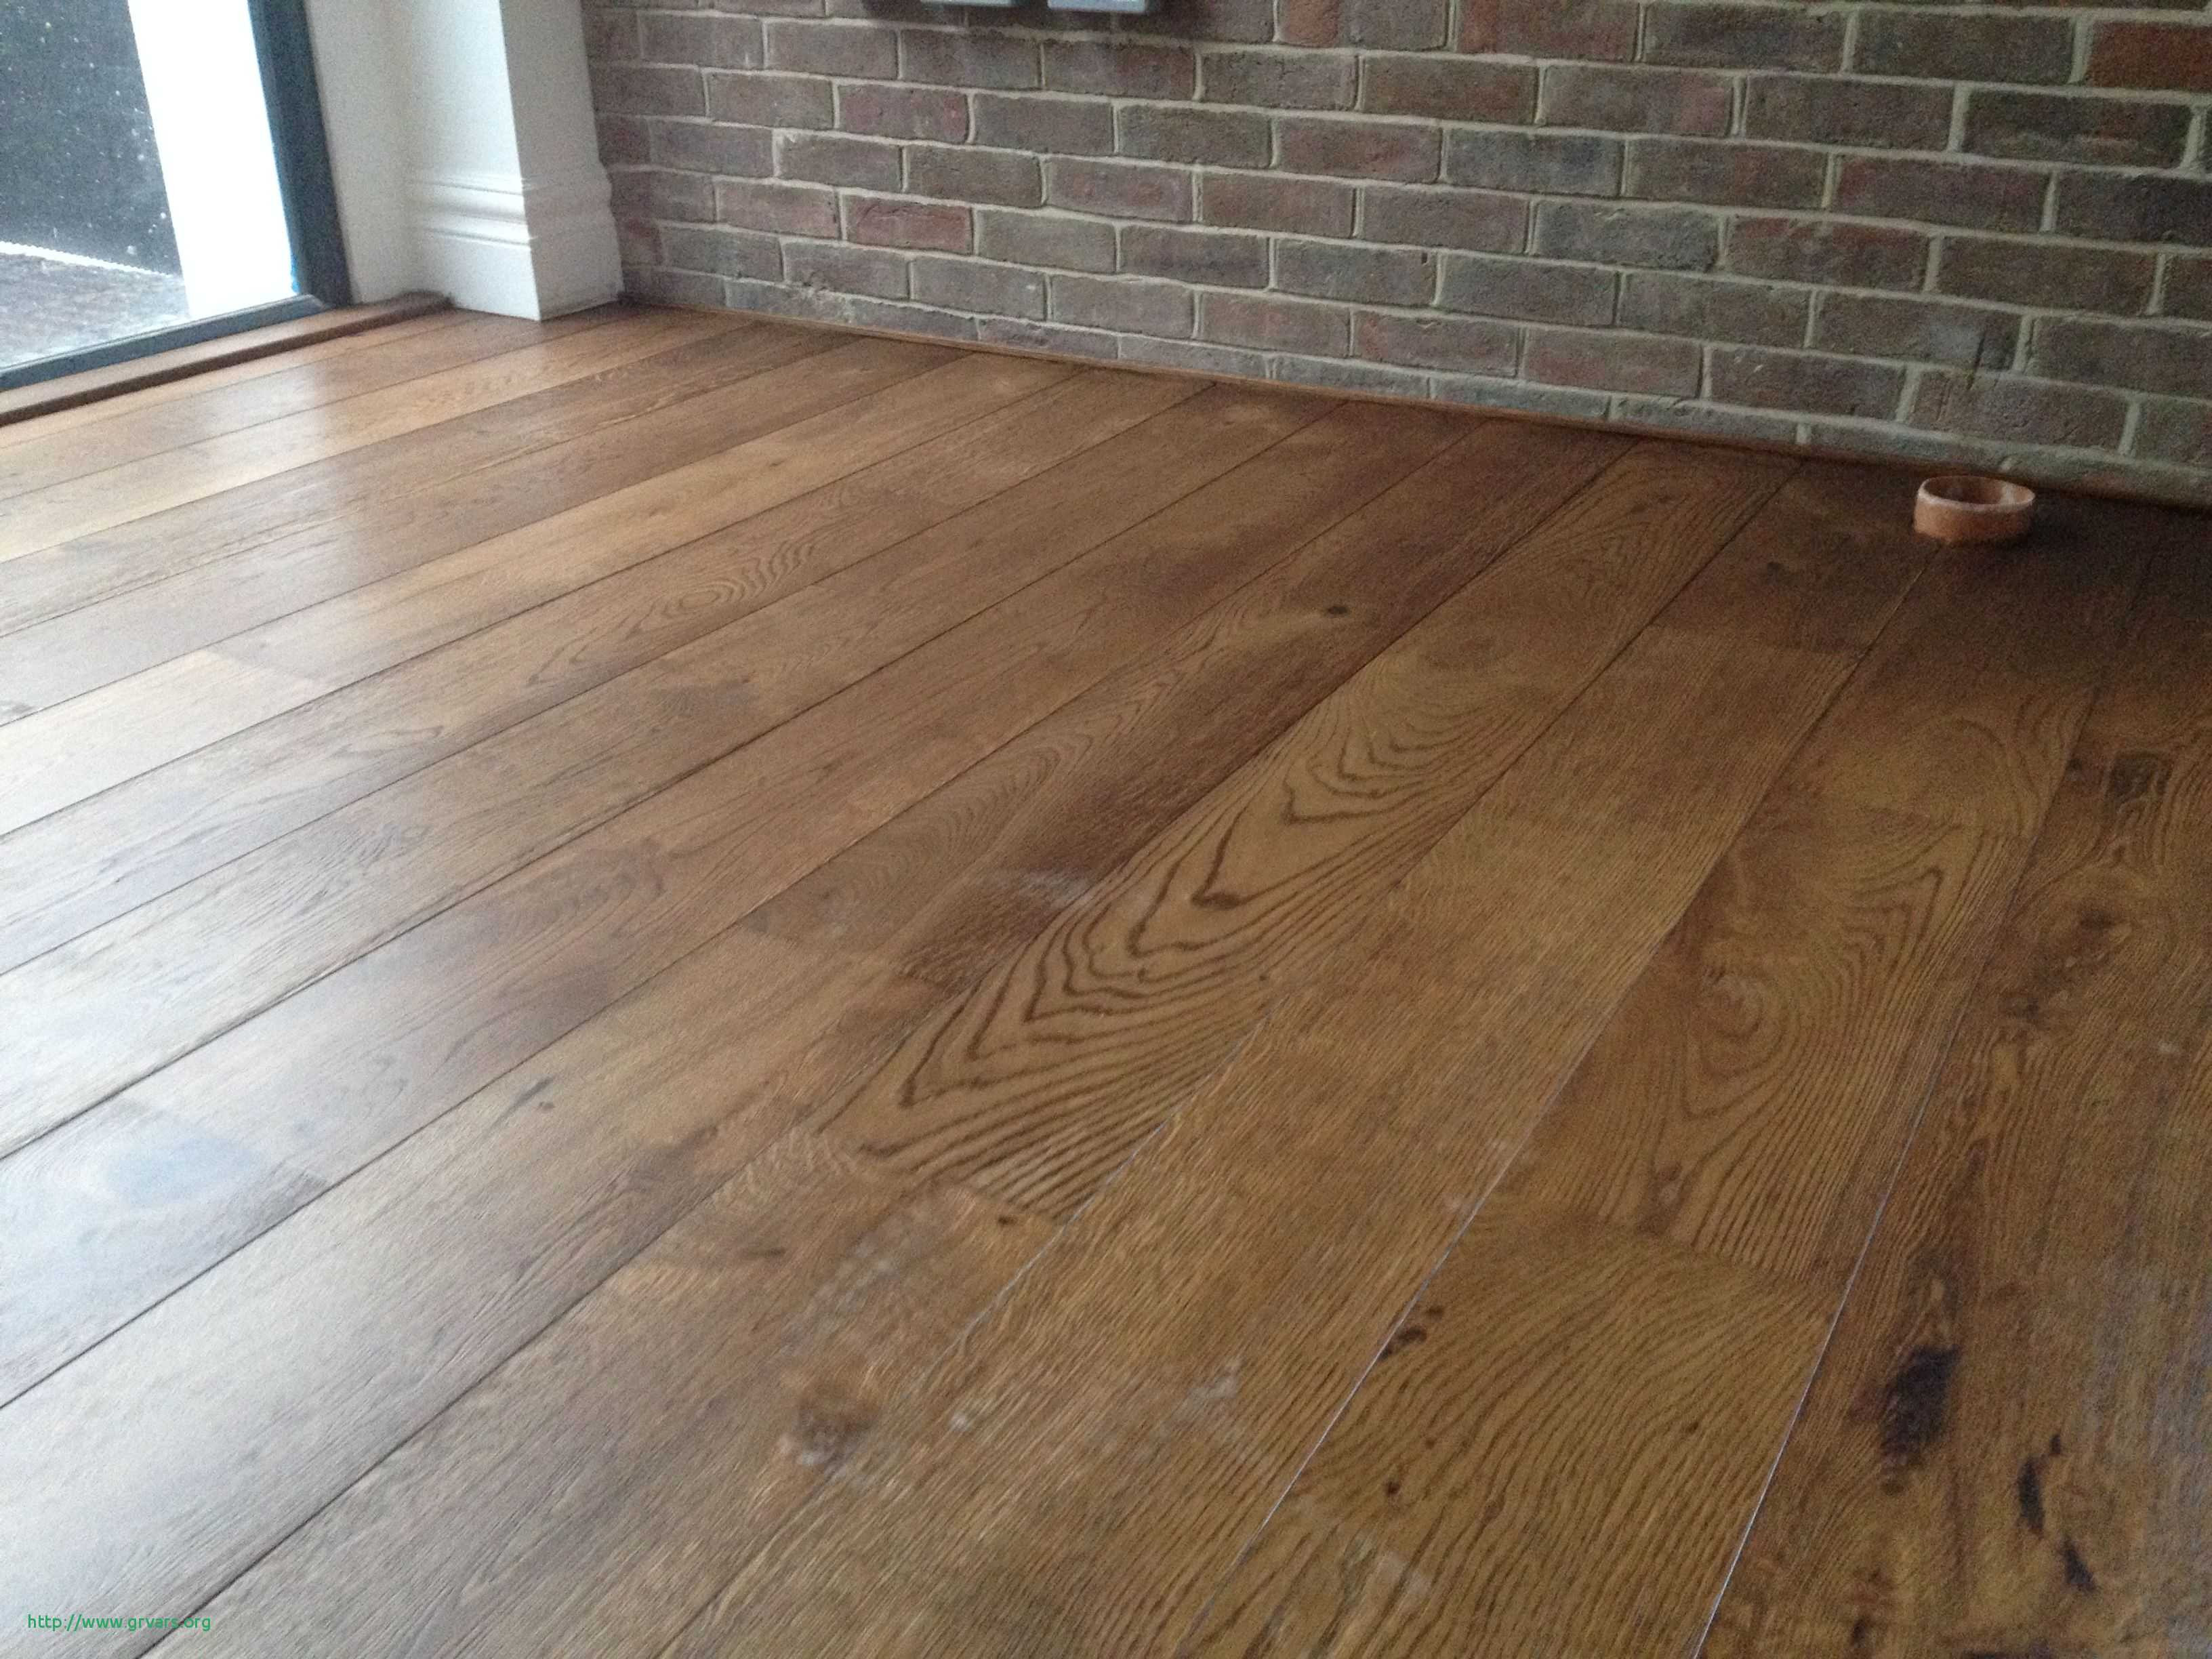 unfinished oak hardwood flooring cost of can i refinish engineered hardwood floors frais unfinished brushed regarding can i refinish engineered hardwood floors frais unfinished brushed oak engineered wood flooring stained dark and